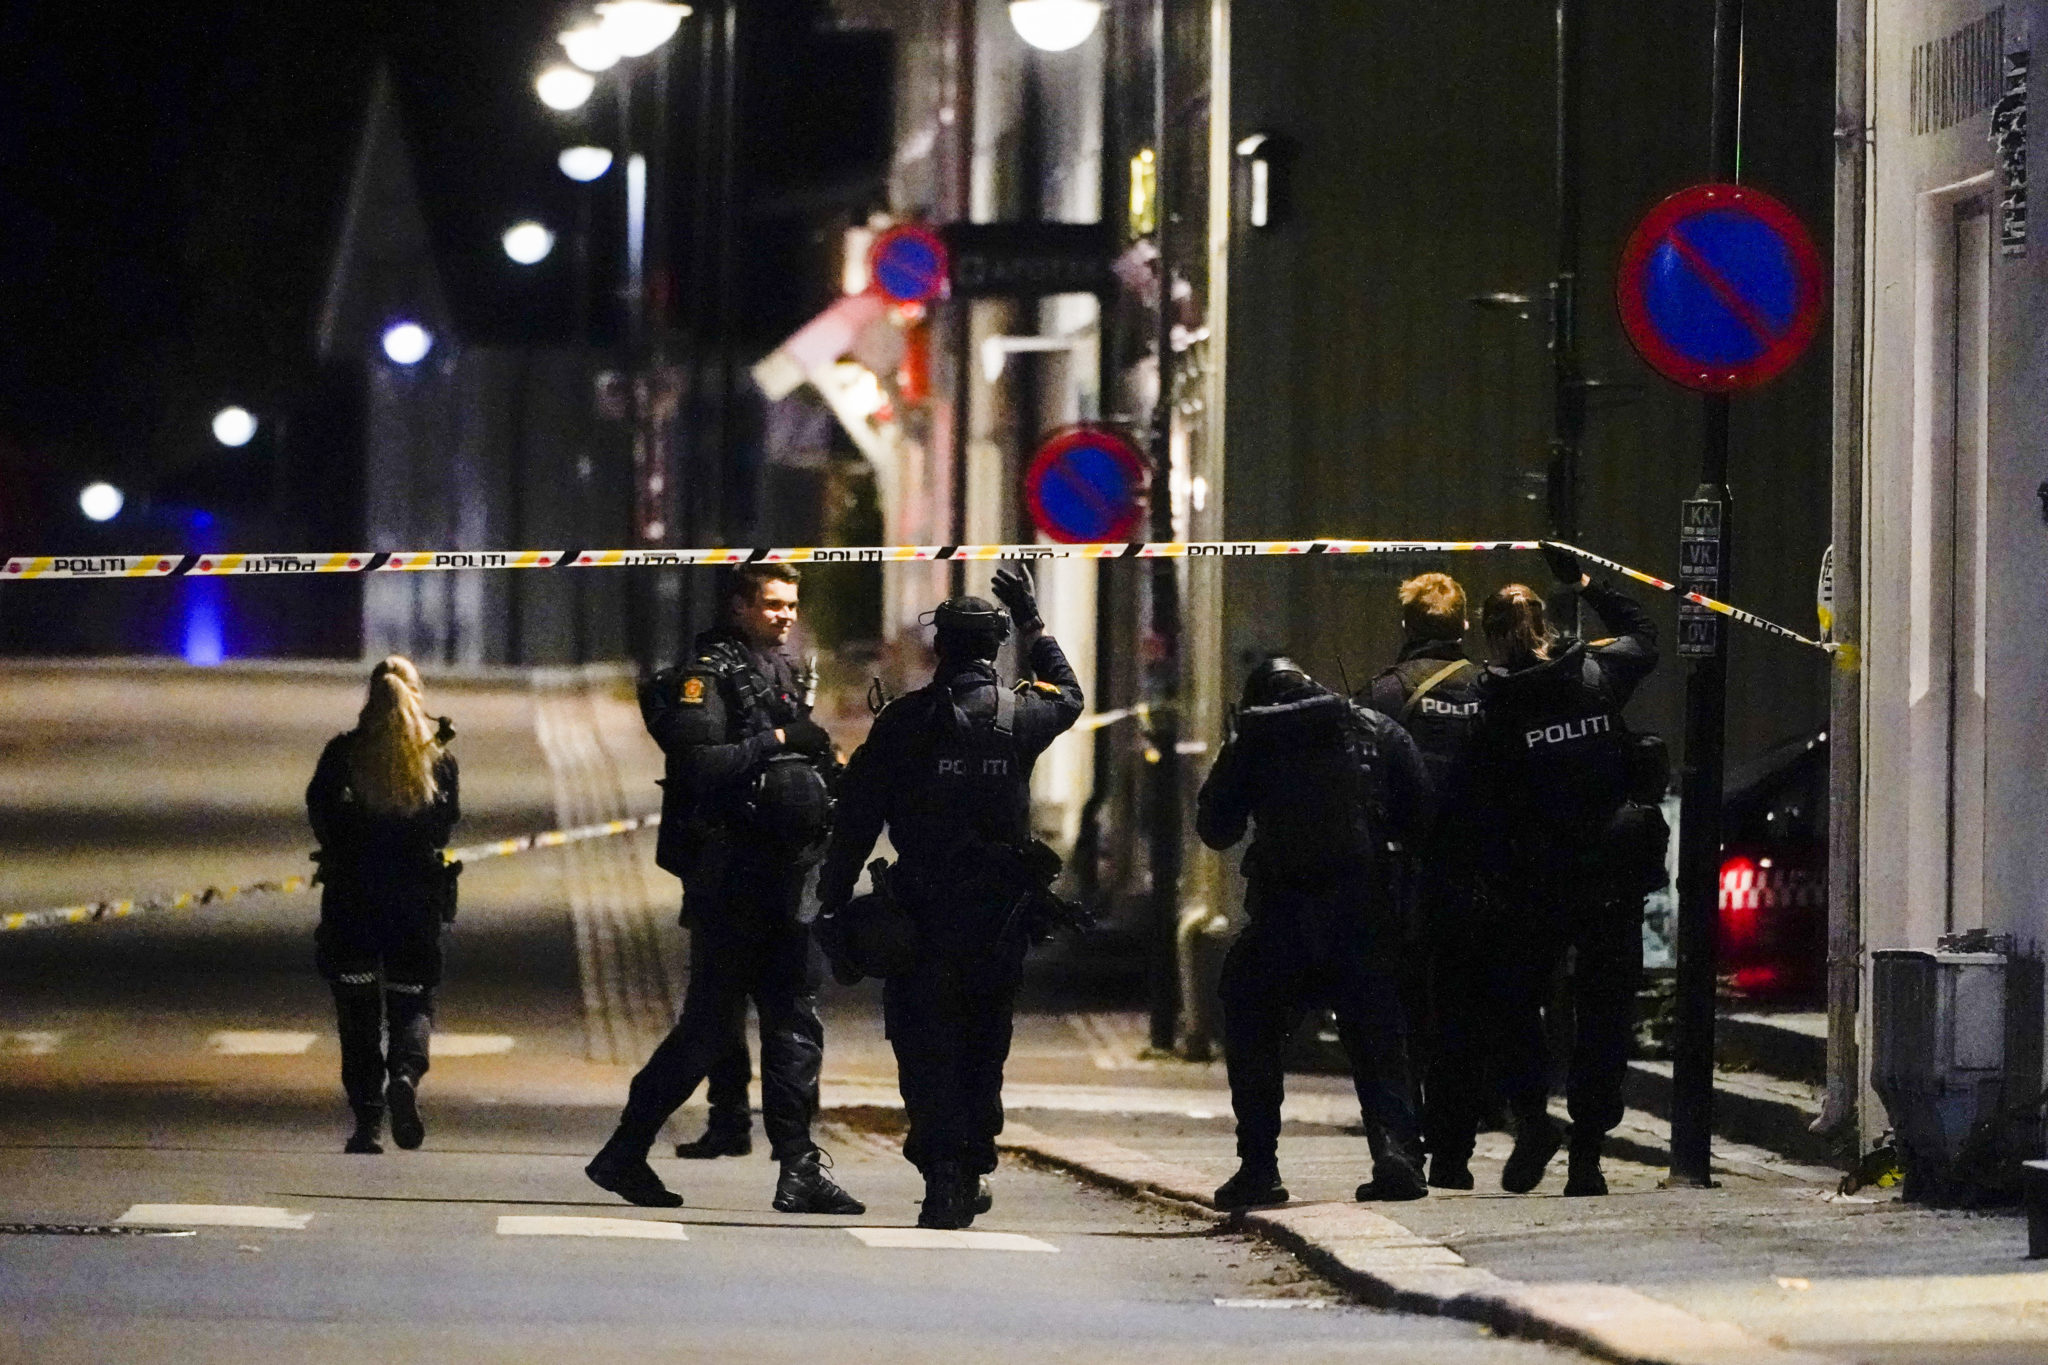 Police examine the scenes of the attack in Norway